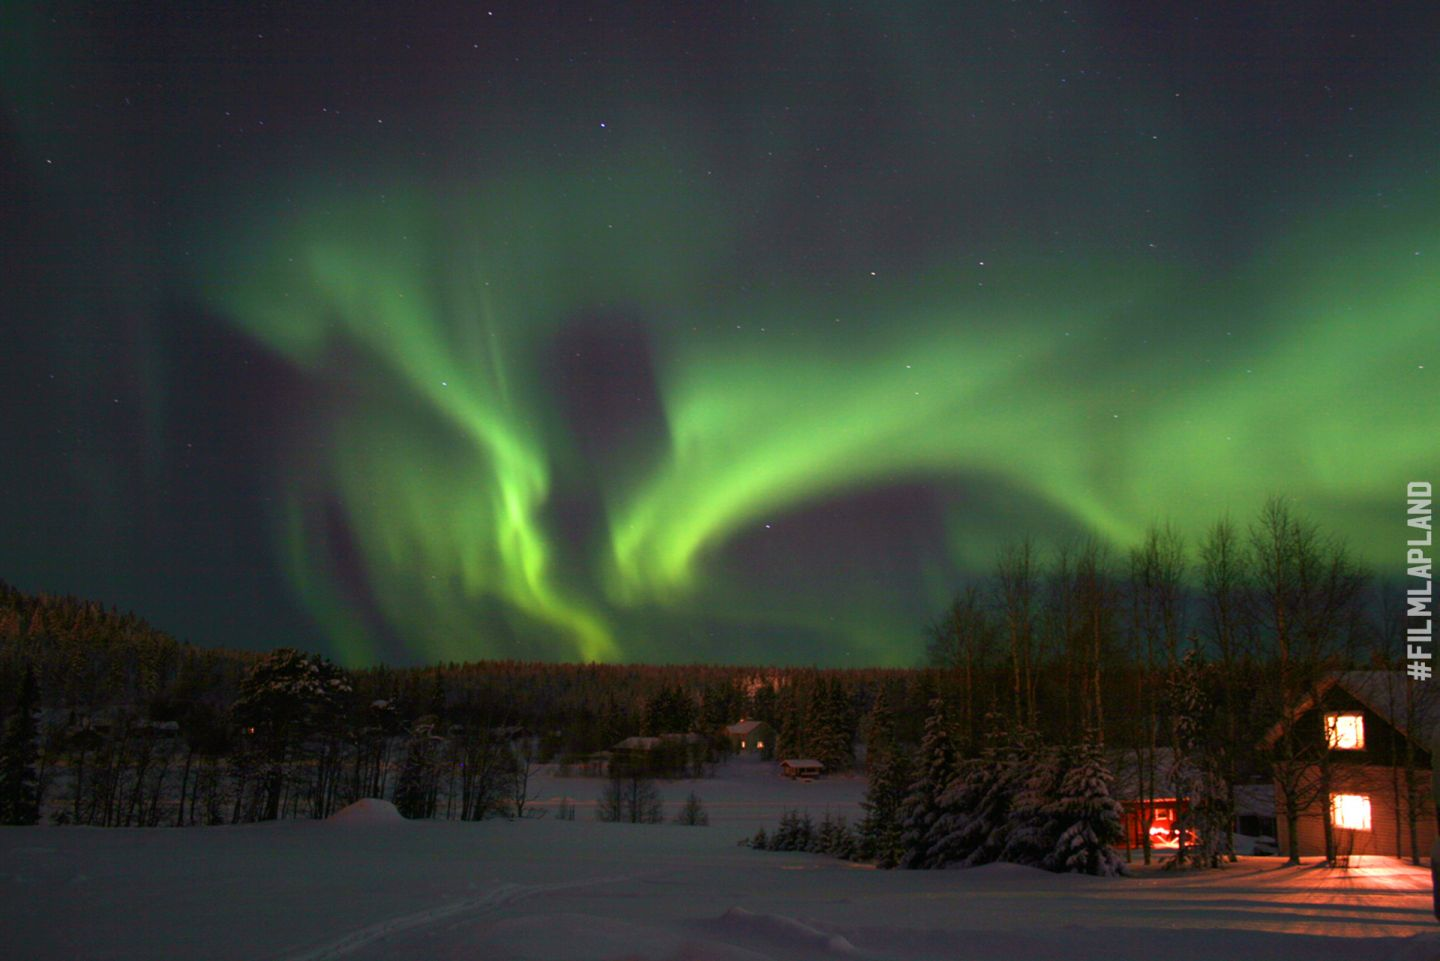 Northern Llights over a forest in Levi, Finland